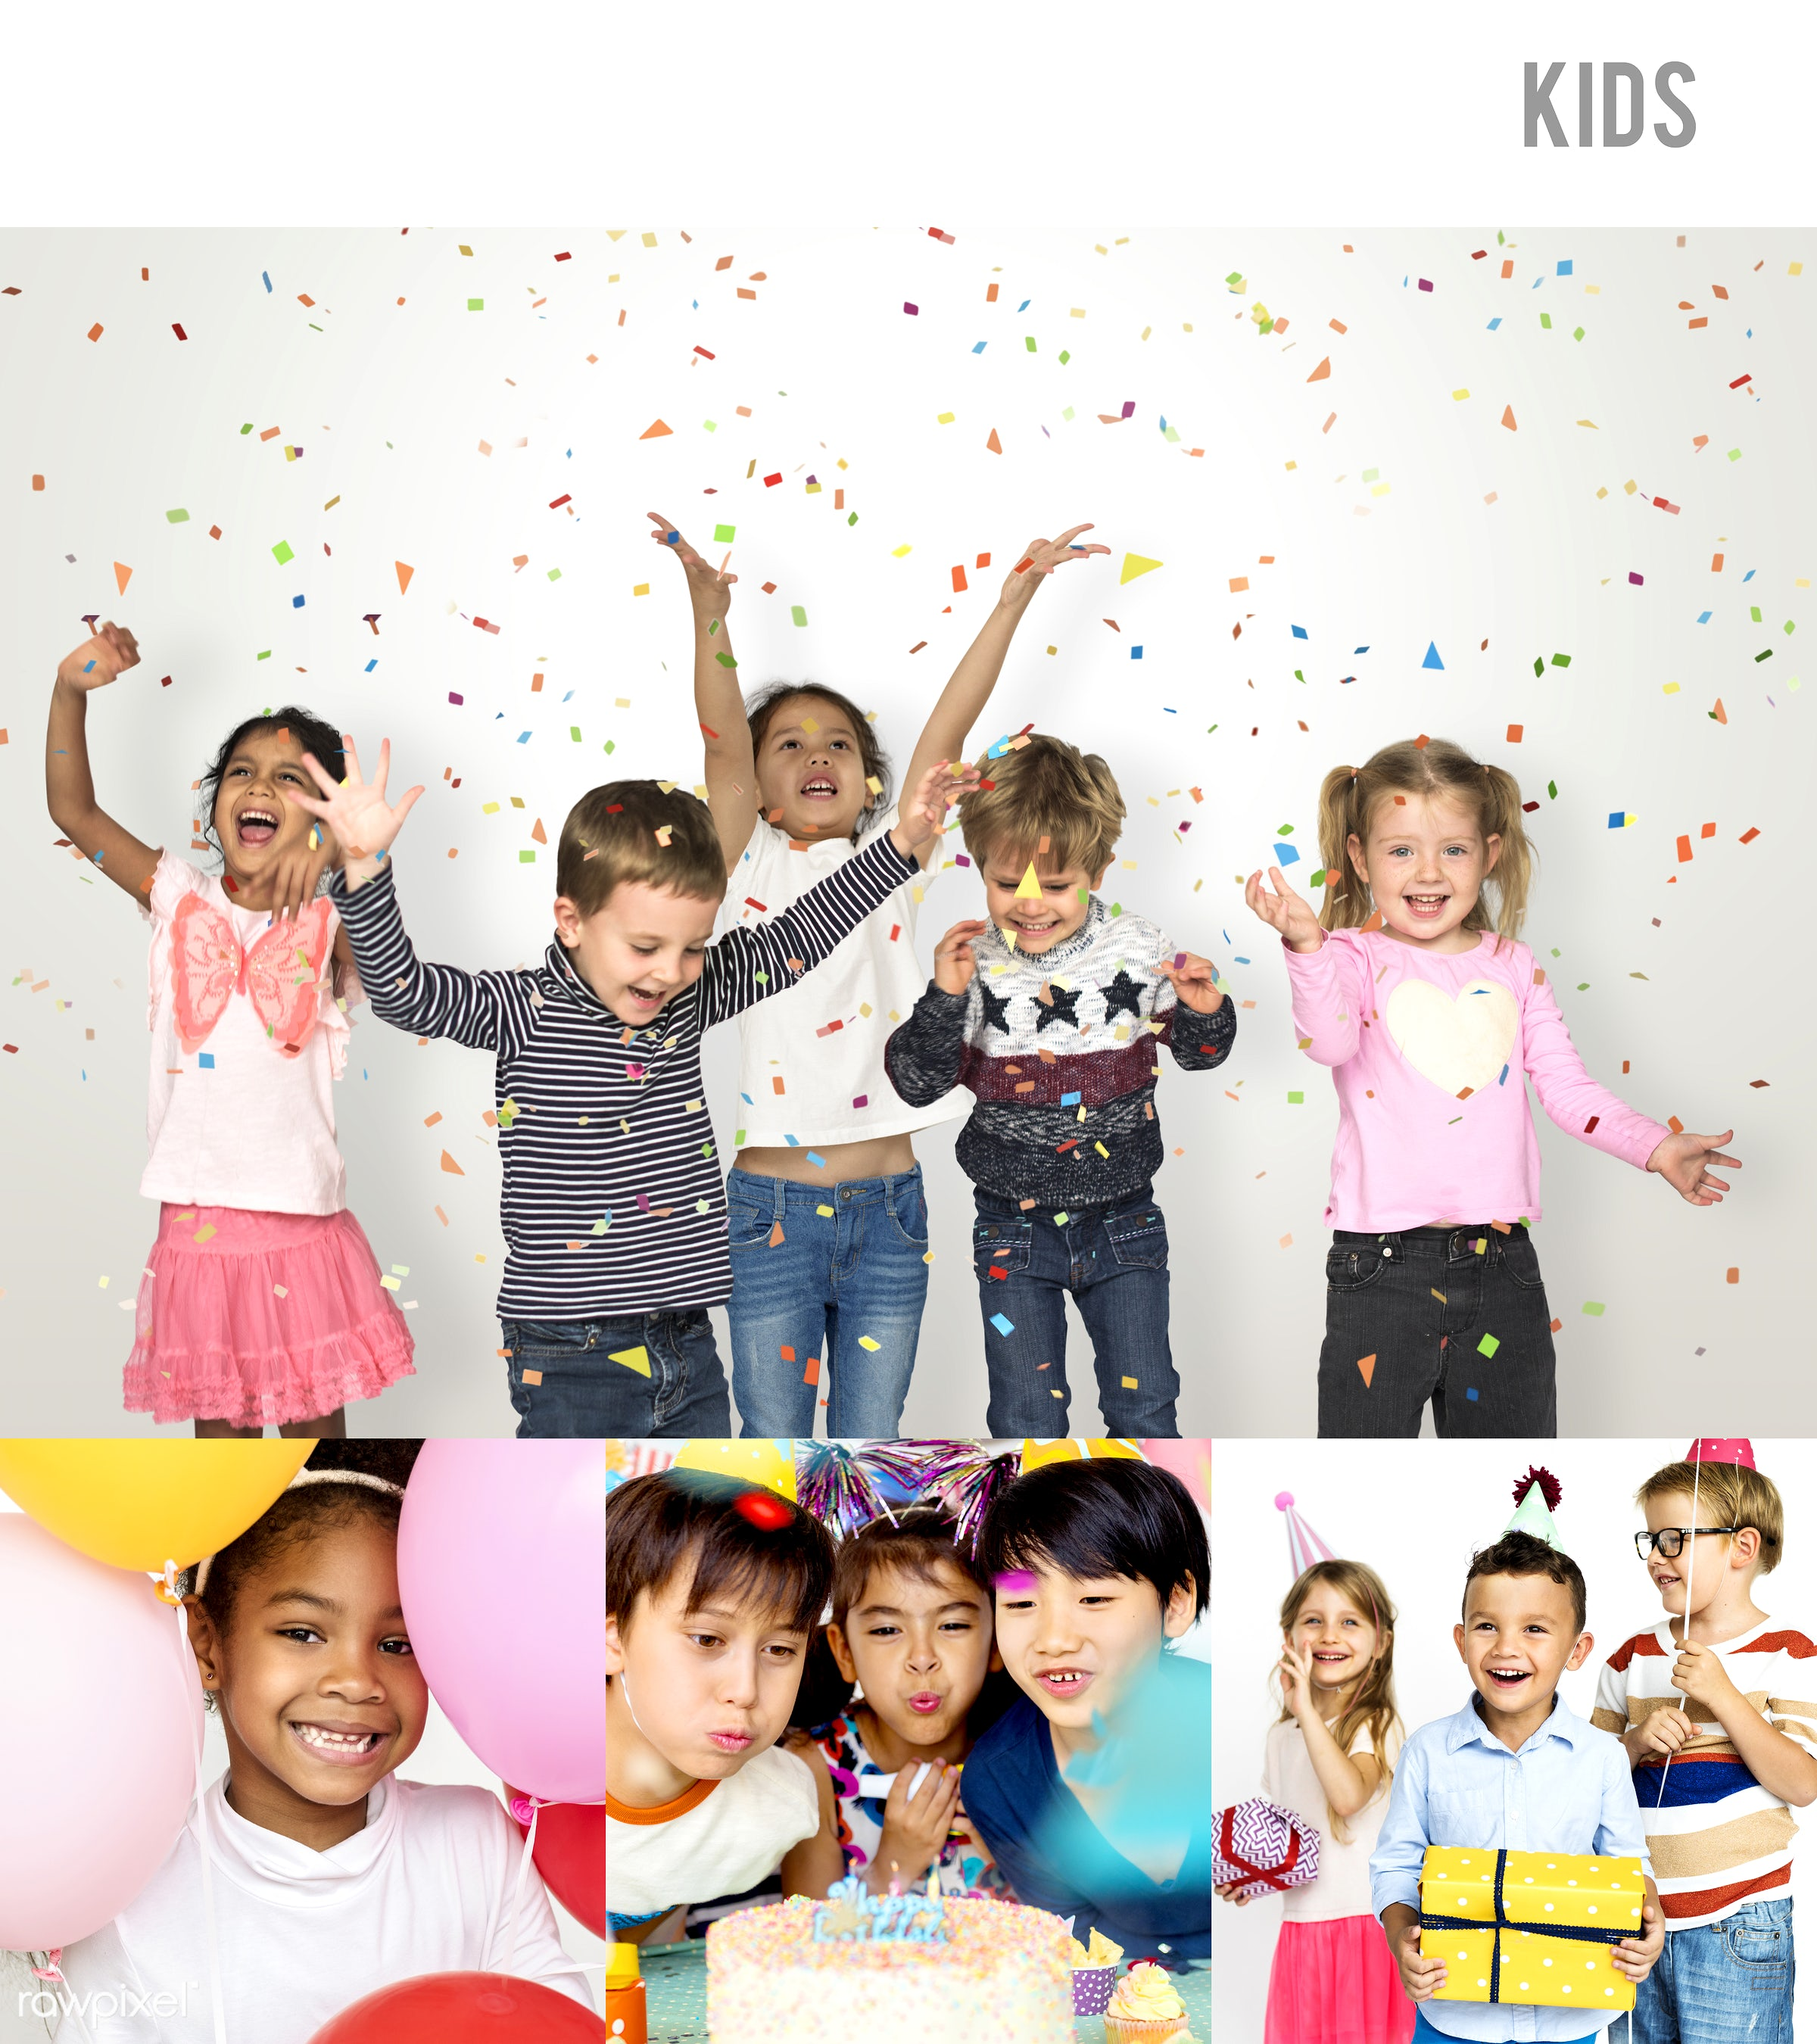 studio, person, little, party, people, together, kid, love, teamwork, friends, friendship, childhood, cheerful, isolated,...